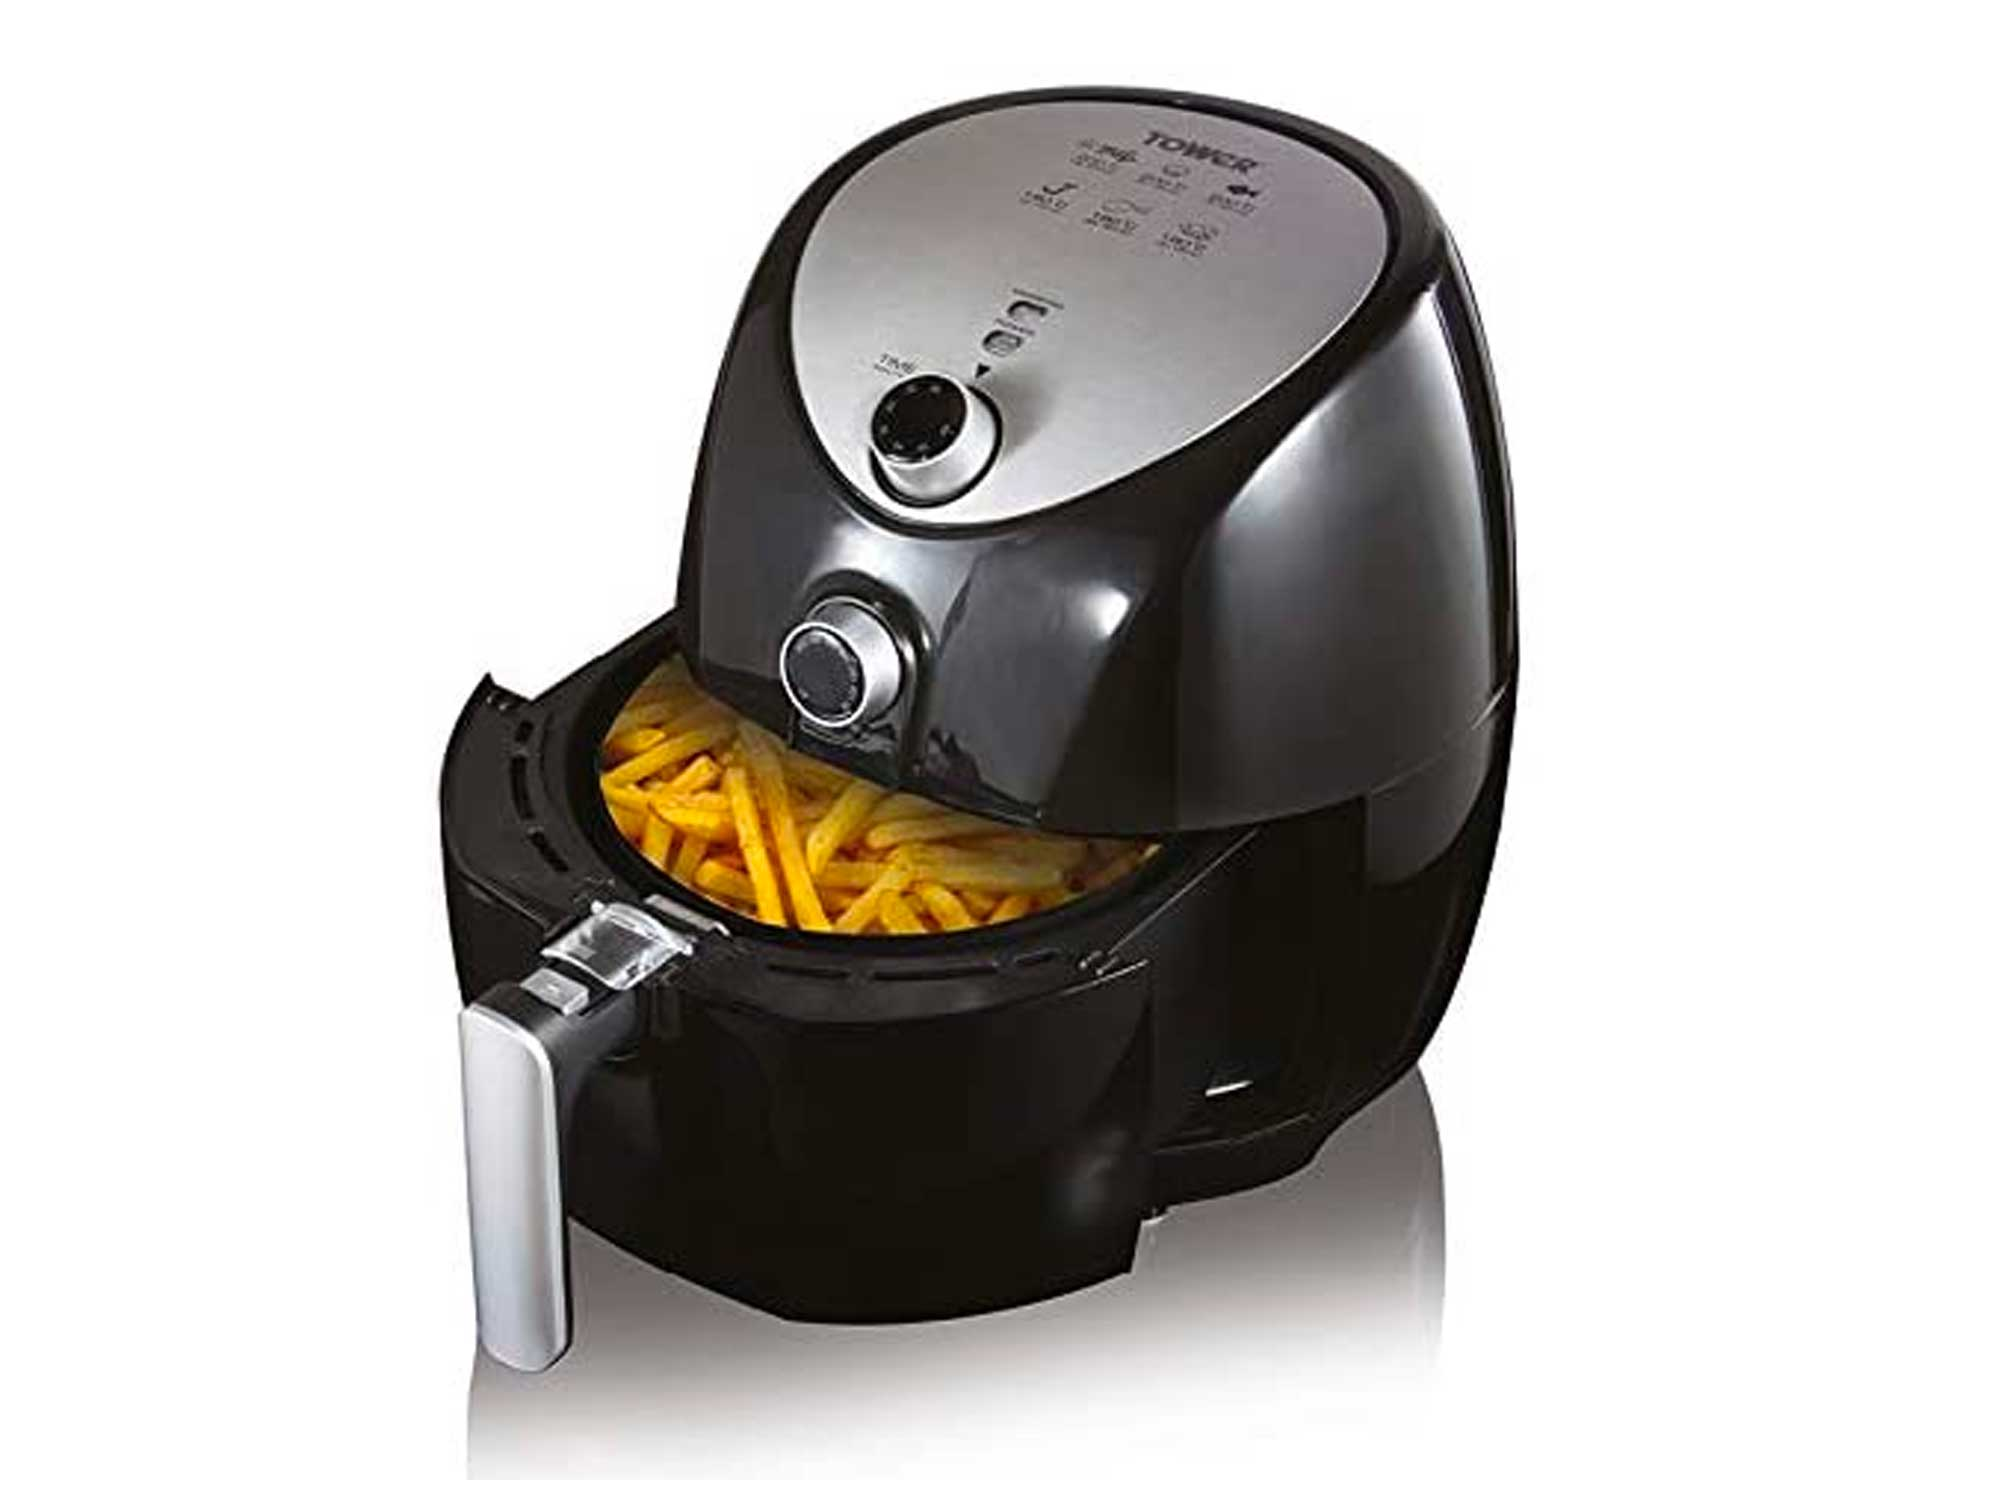 Tower Manual Air Fryer Oven with Rapid Air Circulation and 60 Min Timer, 4.3 Litre